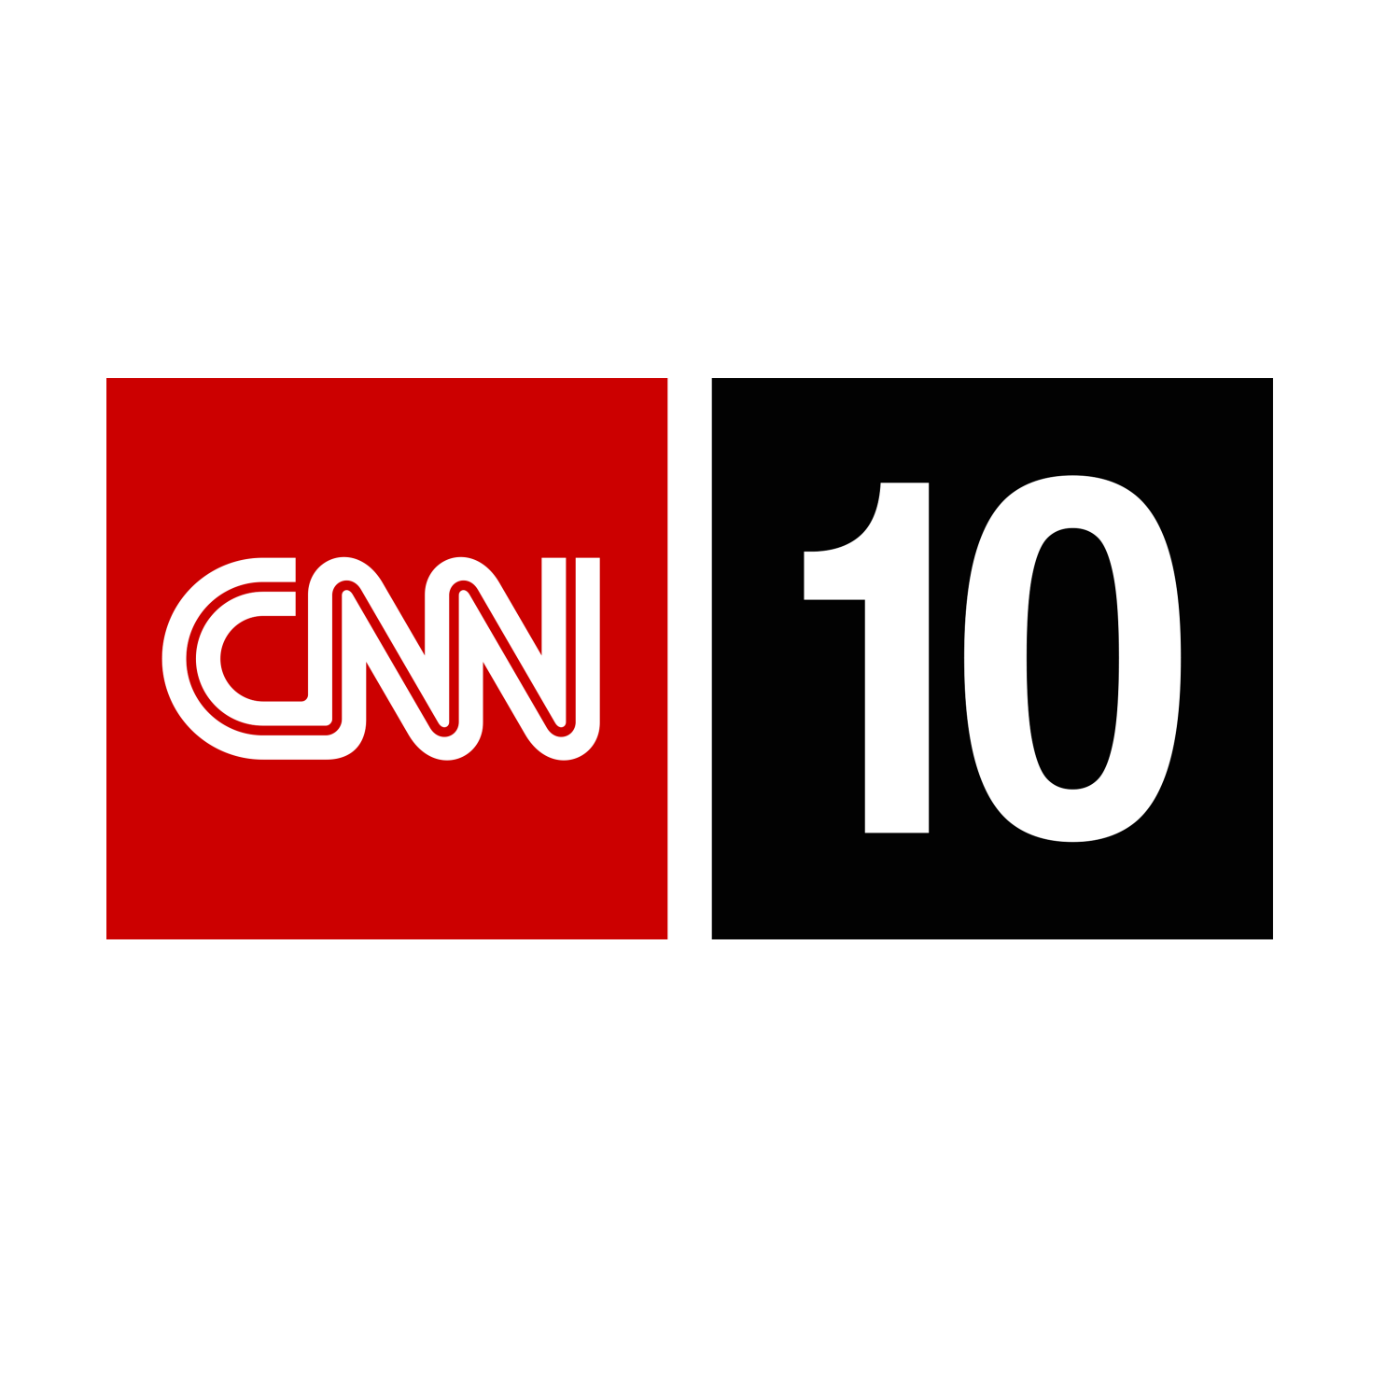 CNN Student News - March 8, 2013